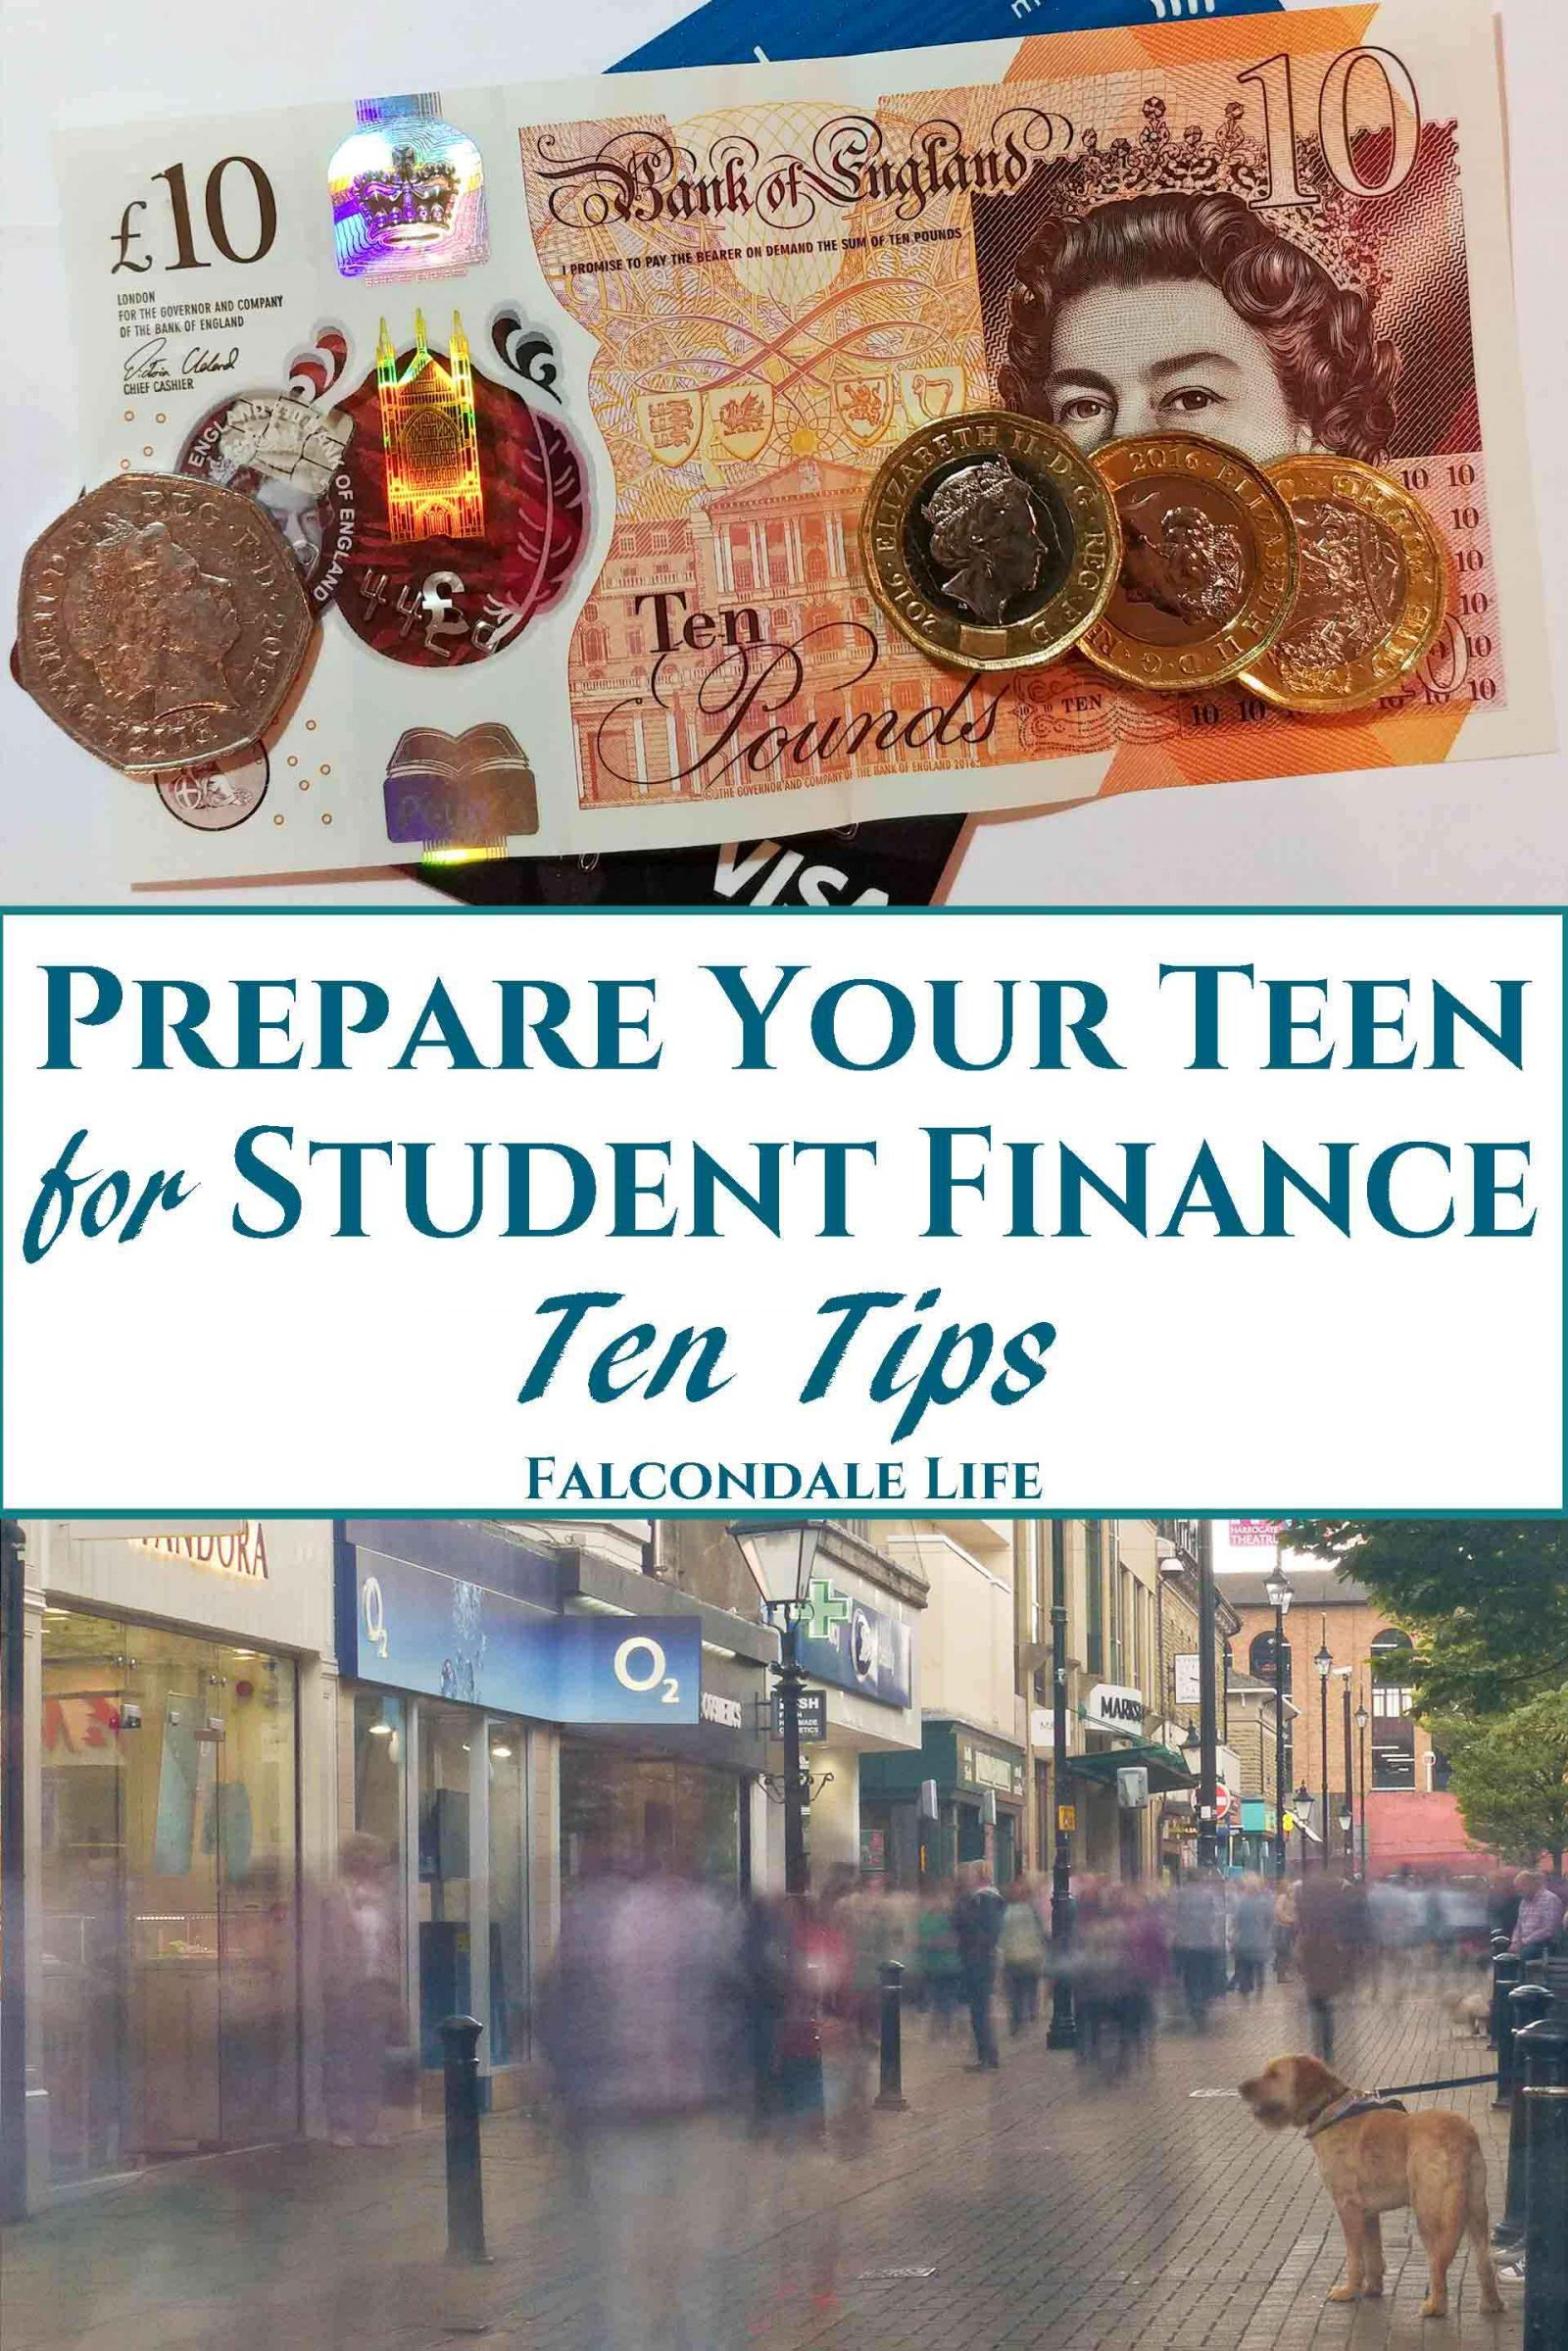 Ideas for surviving student finance for parents and teenagers. Preparing for student life with these tried and tested ideas to get control of student finances. Prepare your teen for student finance - 10 tips on Falcondale Life blog.. Image description: British cash and cards, high street shops and blog title.